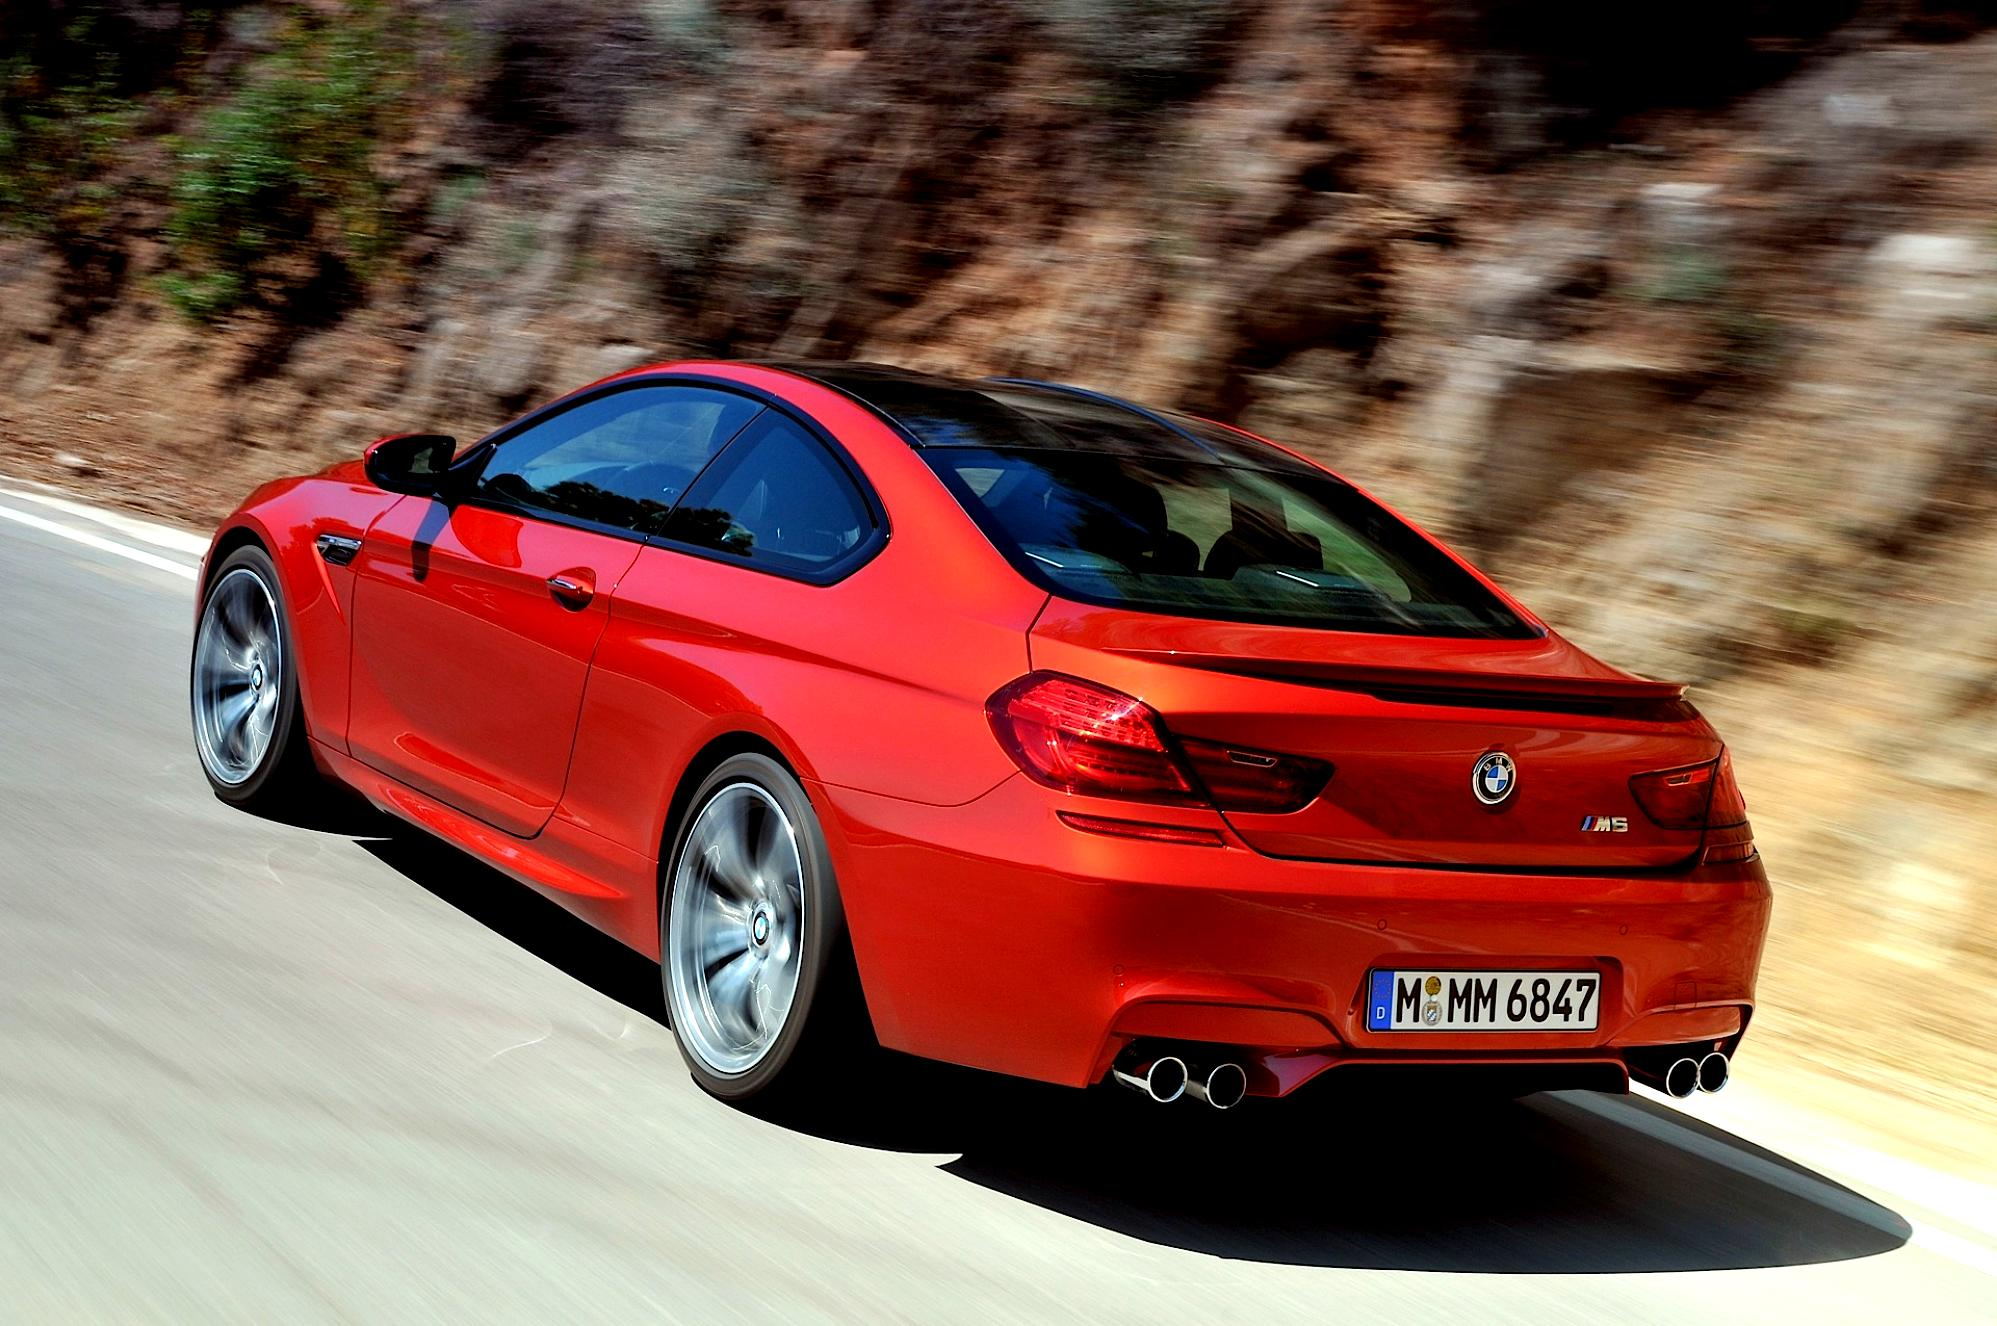 BMW M6 Coupe F13 2012 #51